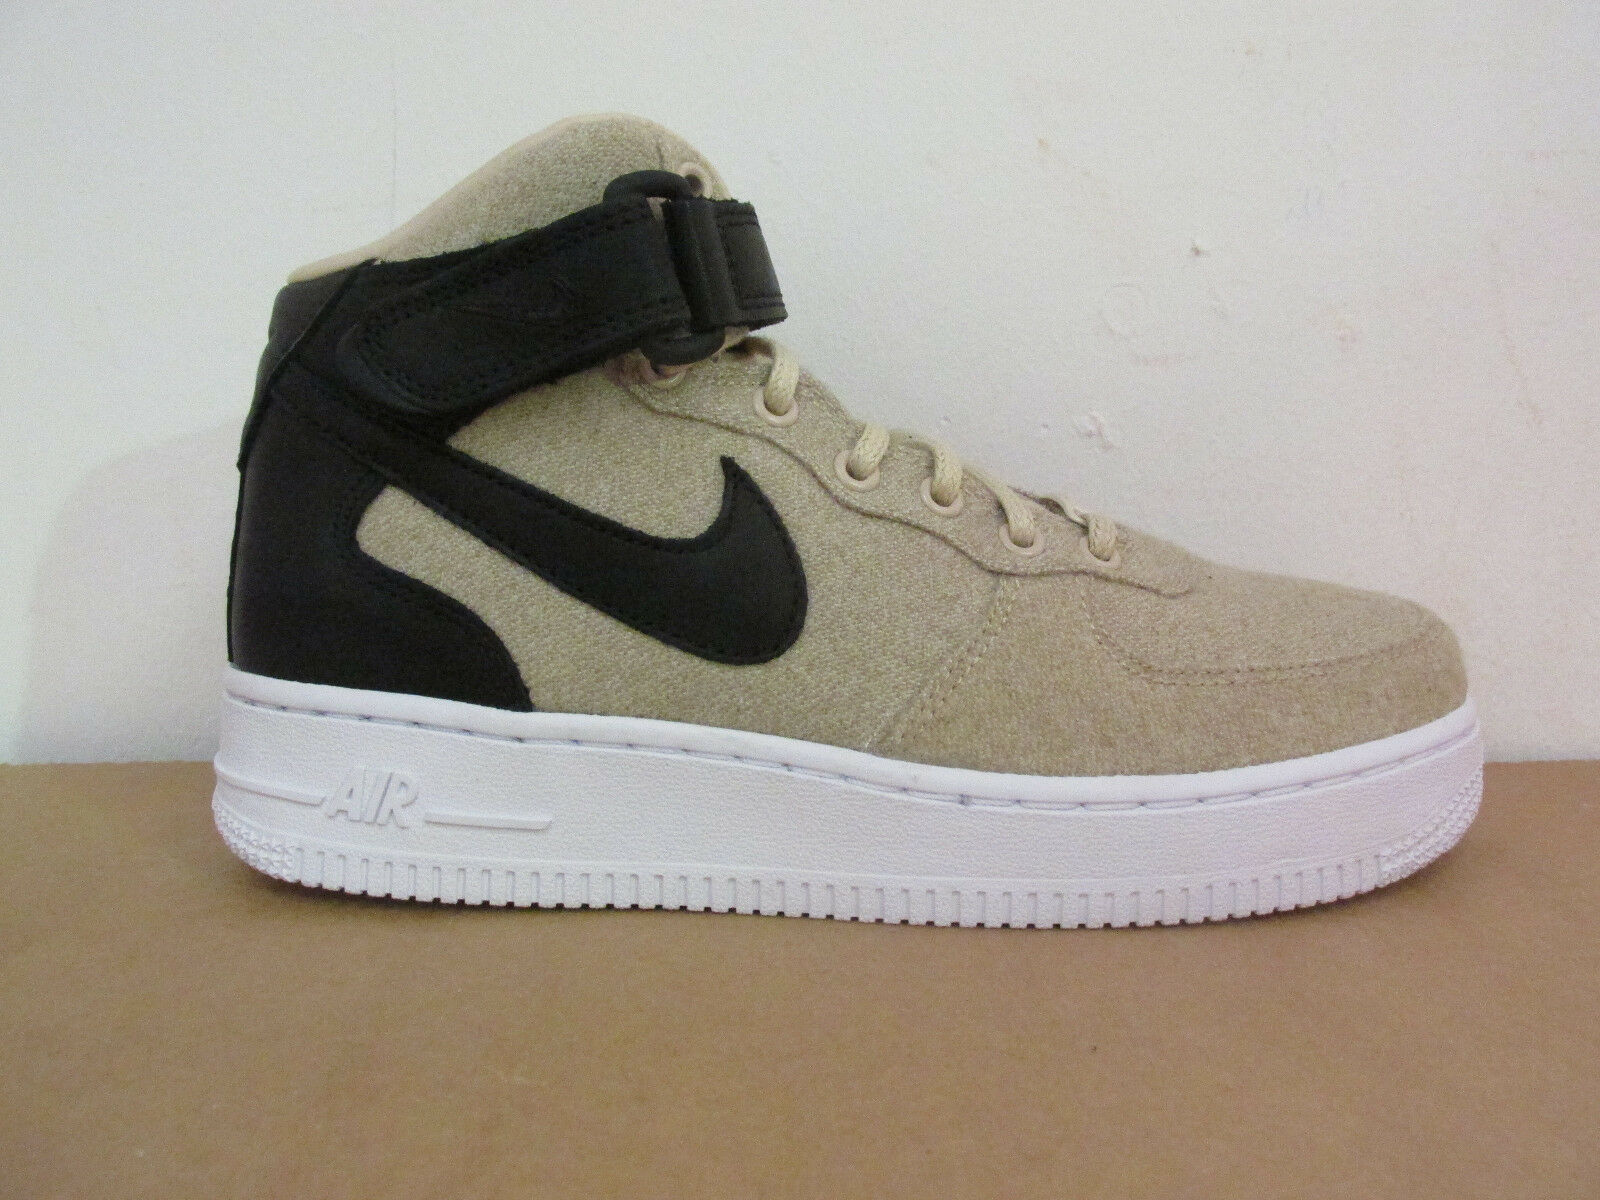 Nike femmes Air Force 1 07 Mid Mid 07 LTHR PRM Hi Top Trainers 857666 001 CLEARANCE 5e6fc2